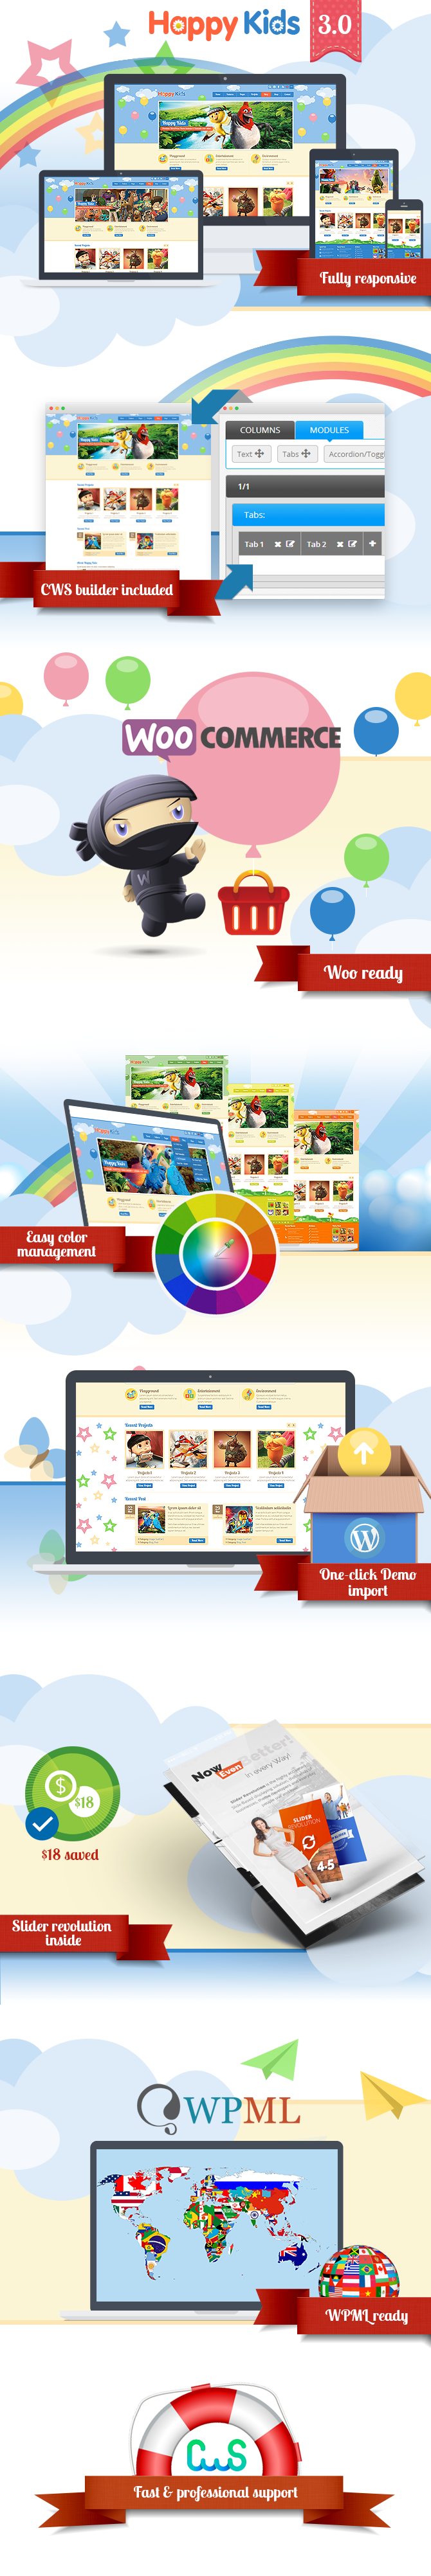 HappyKids-Children-WordPress-Theme